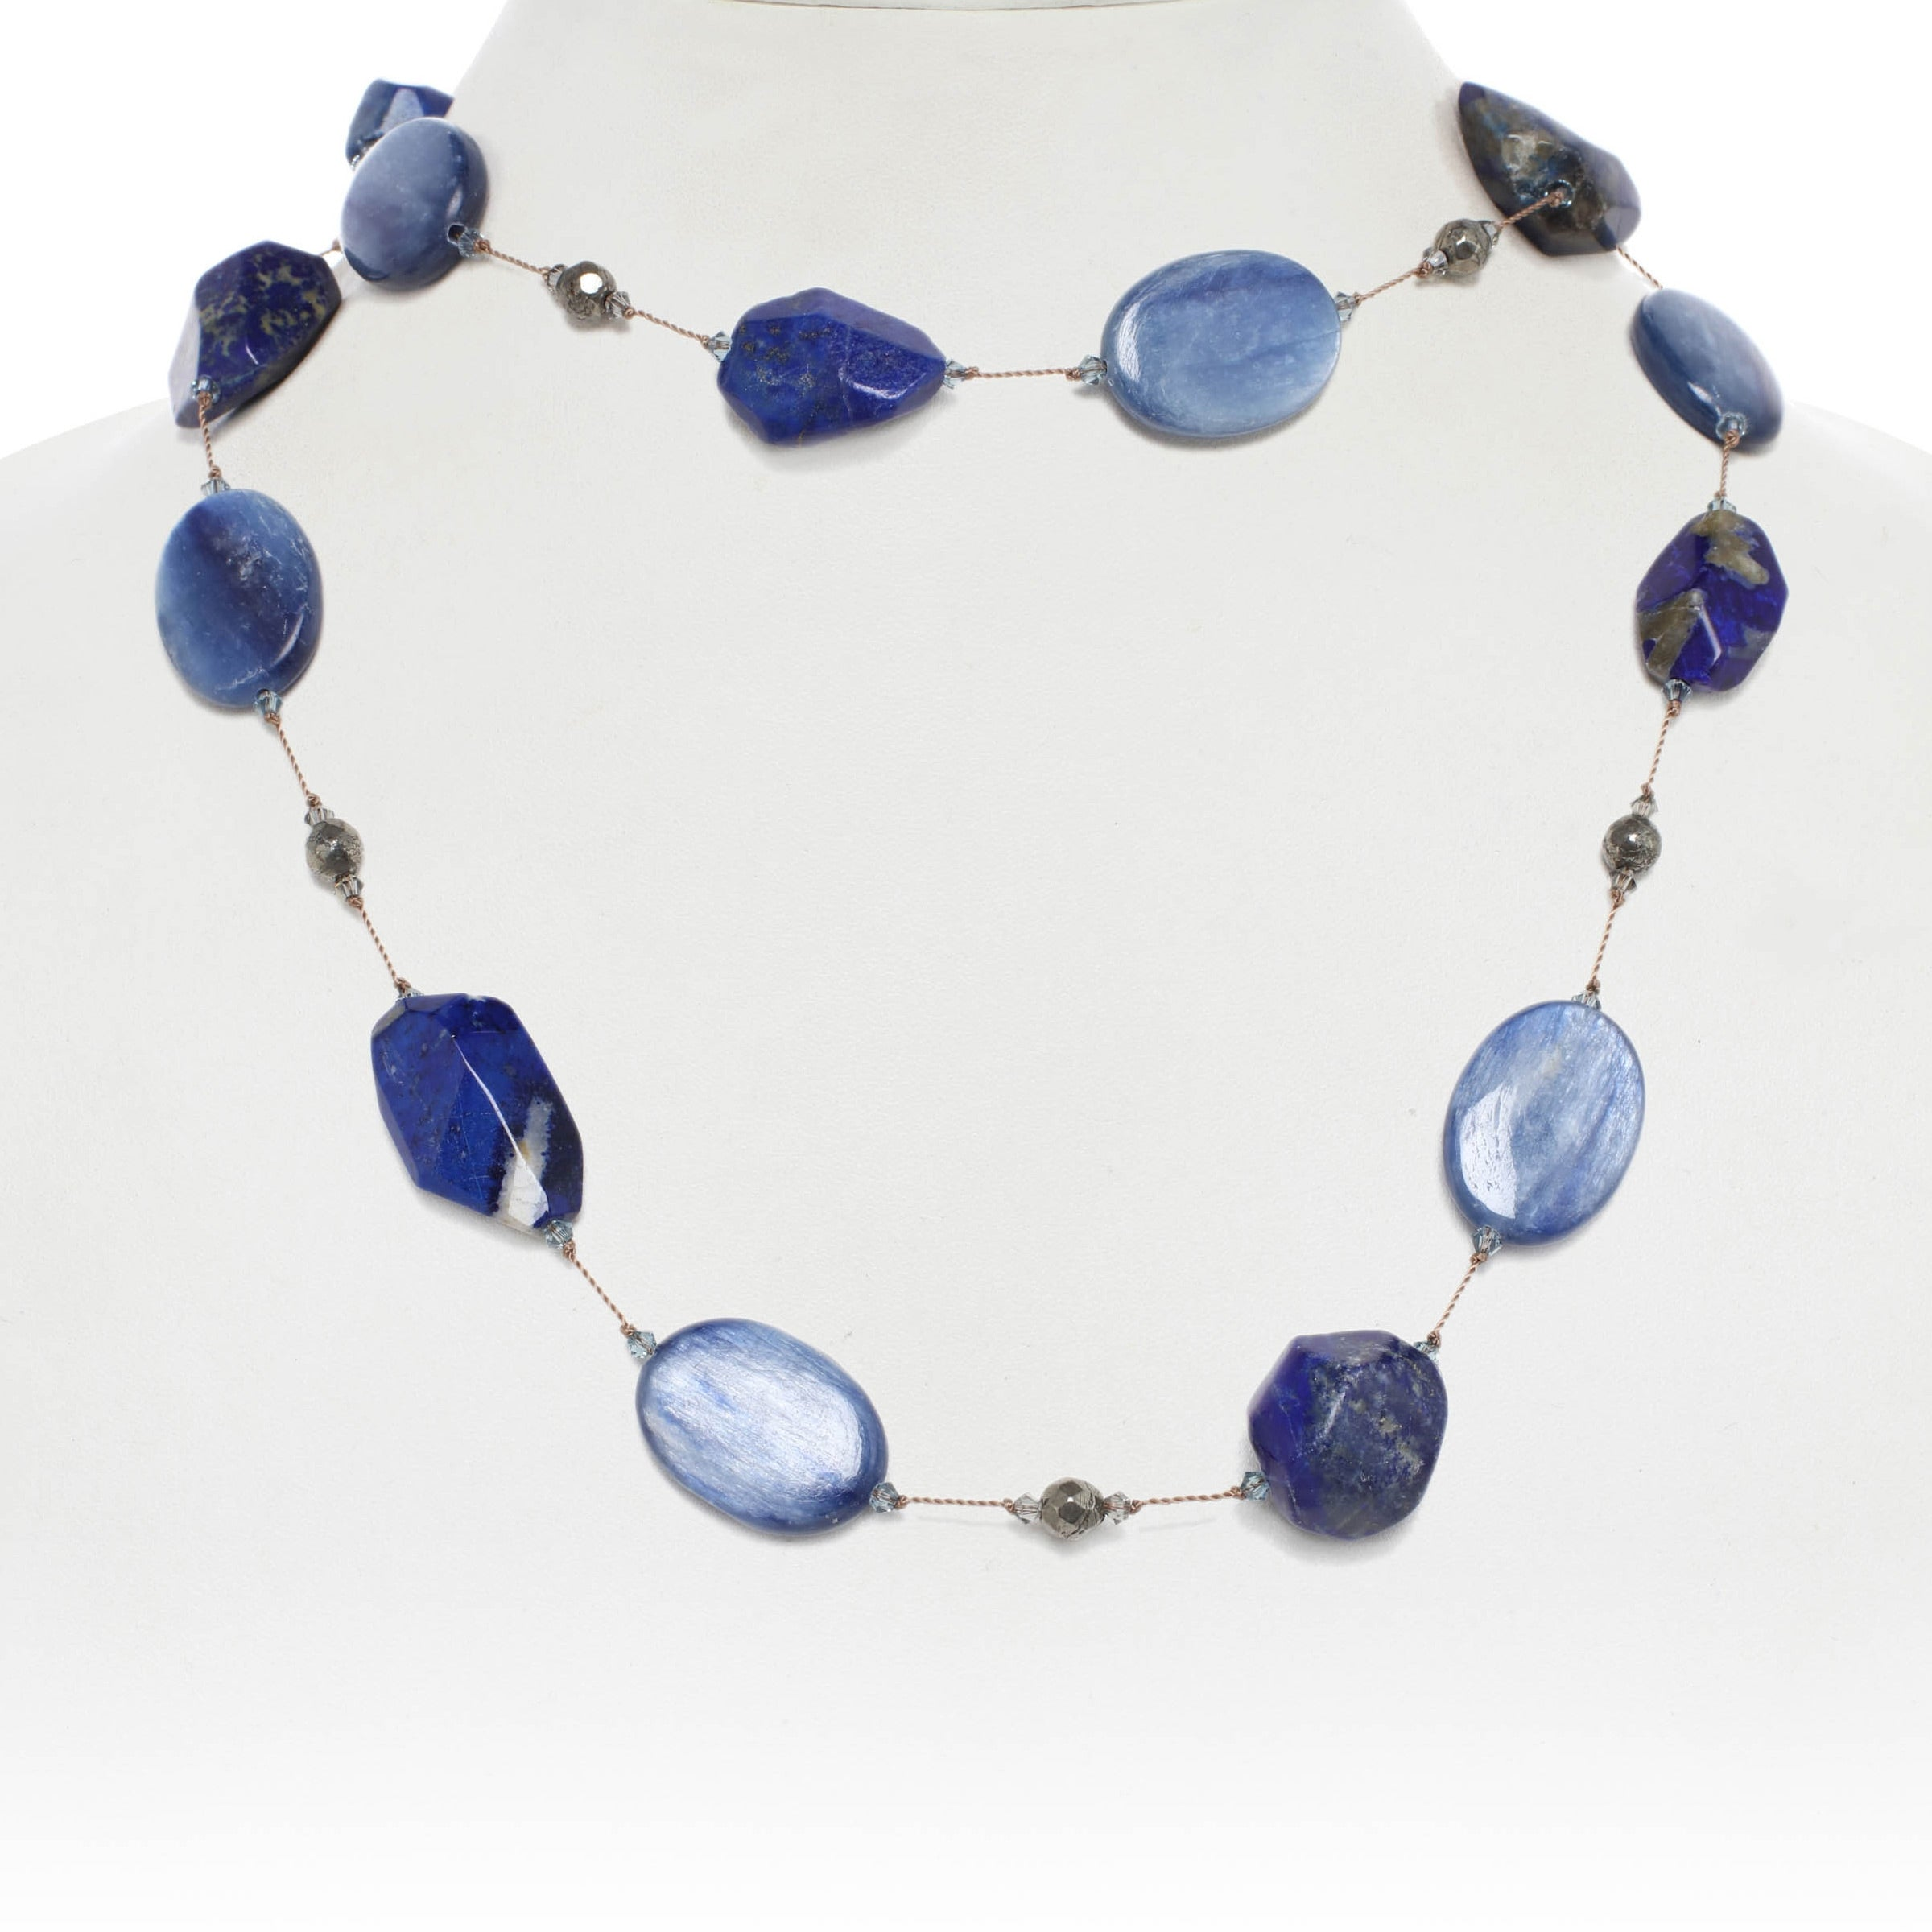 Blue Tone Multi Gemstone Necklace, 35 Inches, Sterling Silver